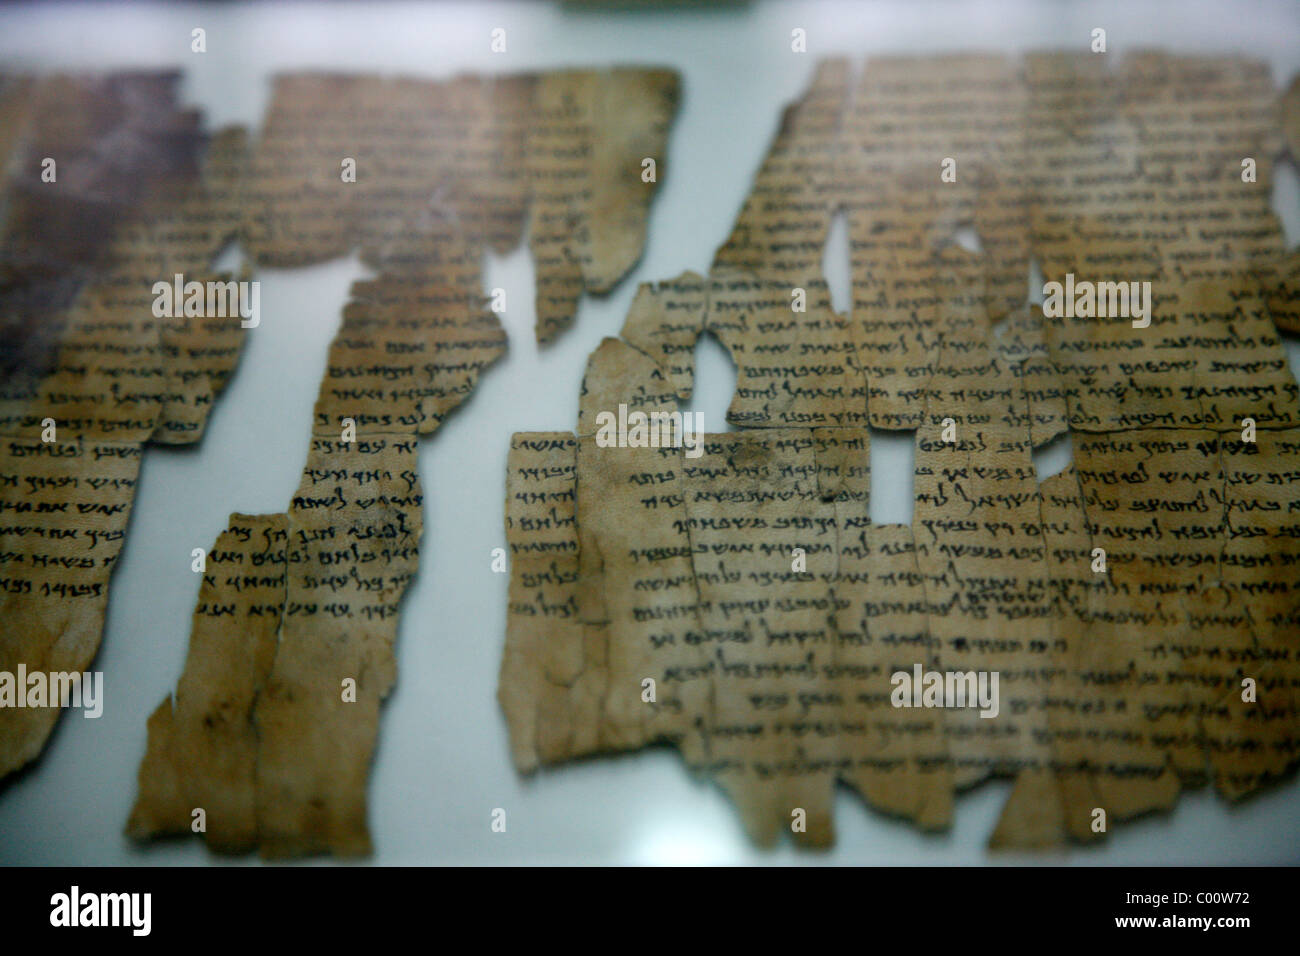 The Dead Sea Scrolls at the National Archeological Museum in the Citadel, Amman, Jordan. - Stock Image